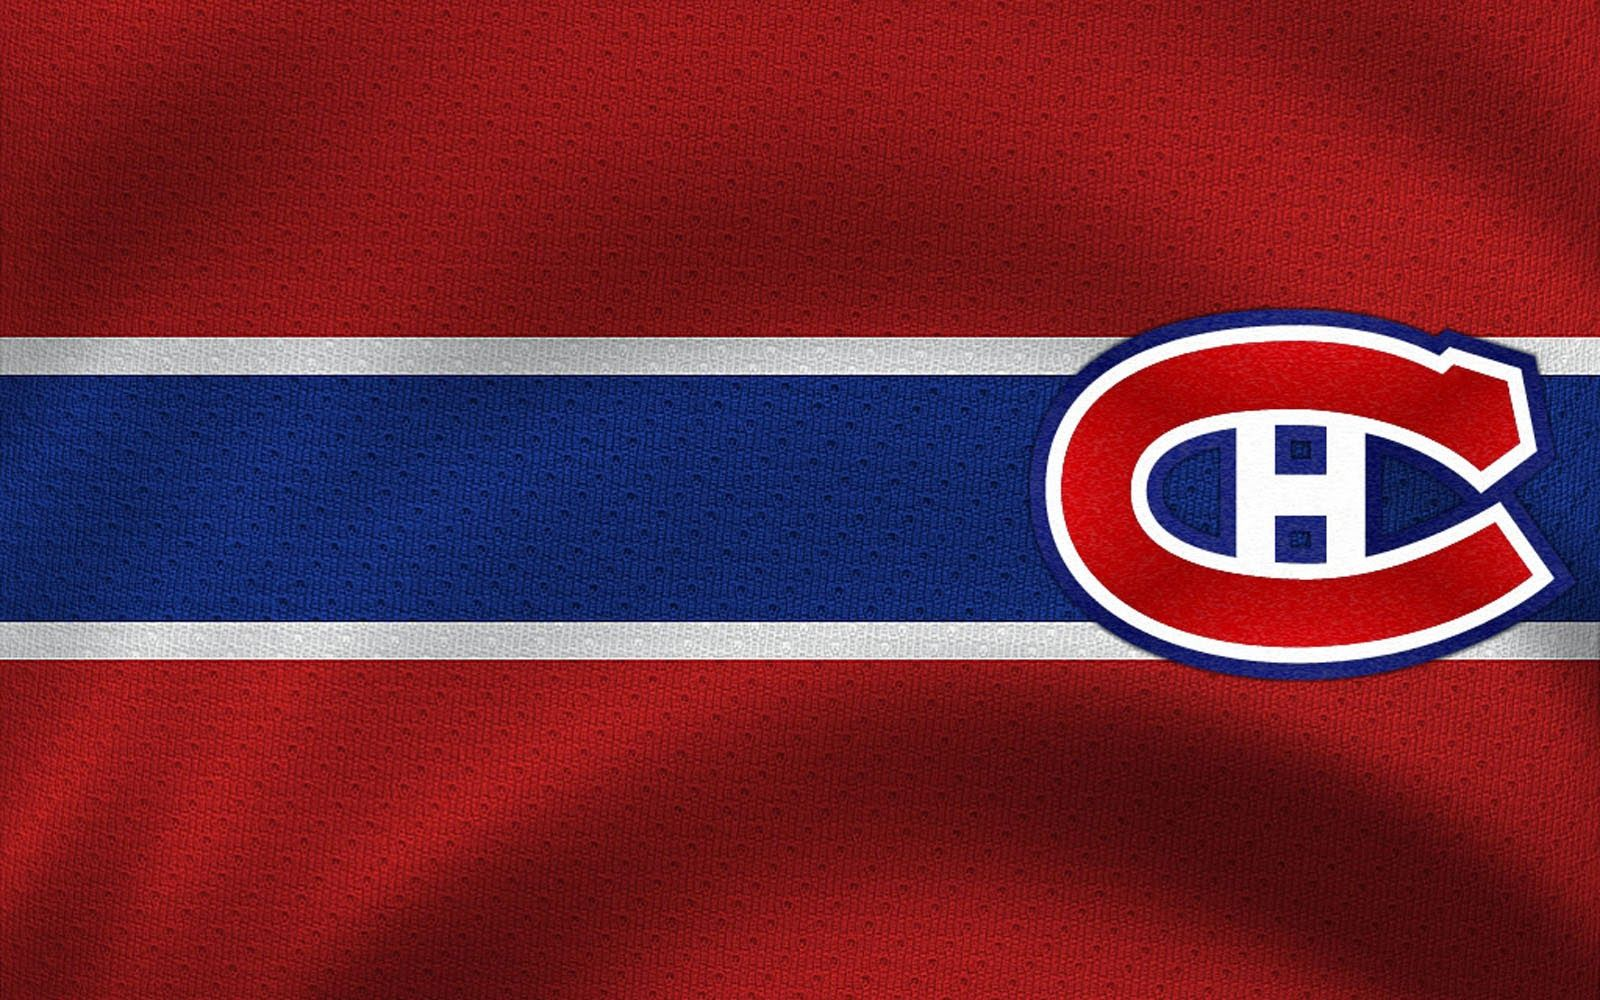 Simple Wallpaper Logo Montreal Canadiens - Montreal-Canadiens-montreal-canadiens-40371144-1600-1000  Graphic_194999.jpg